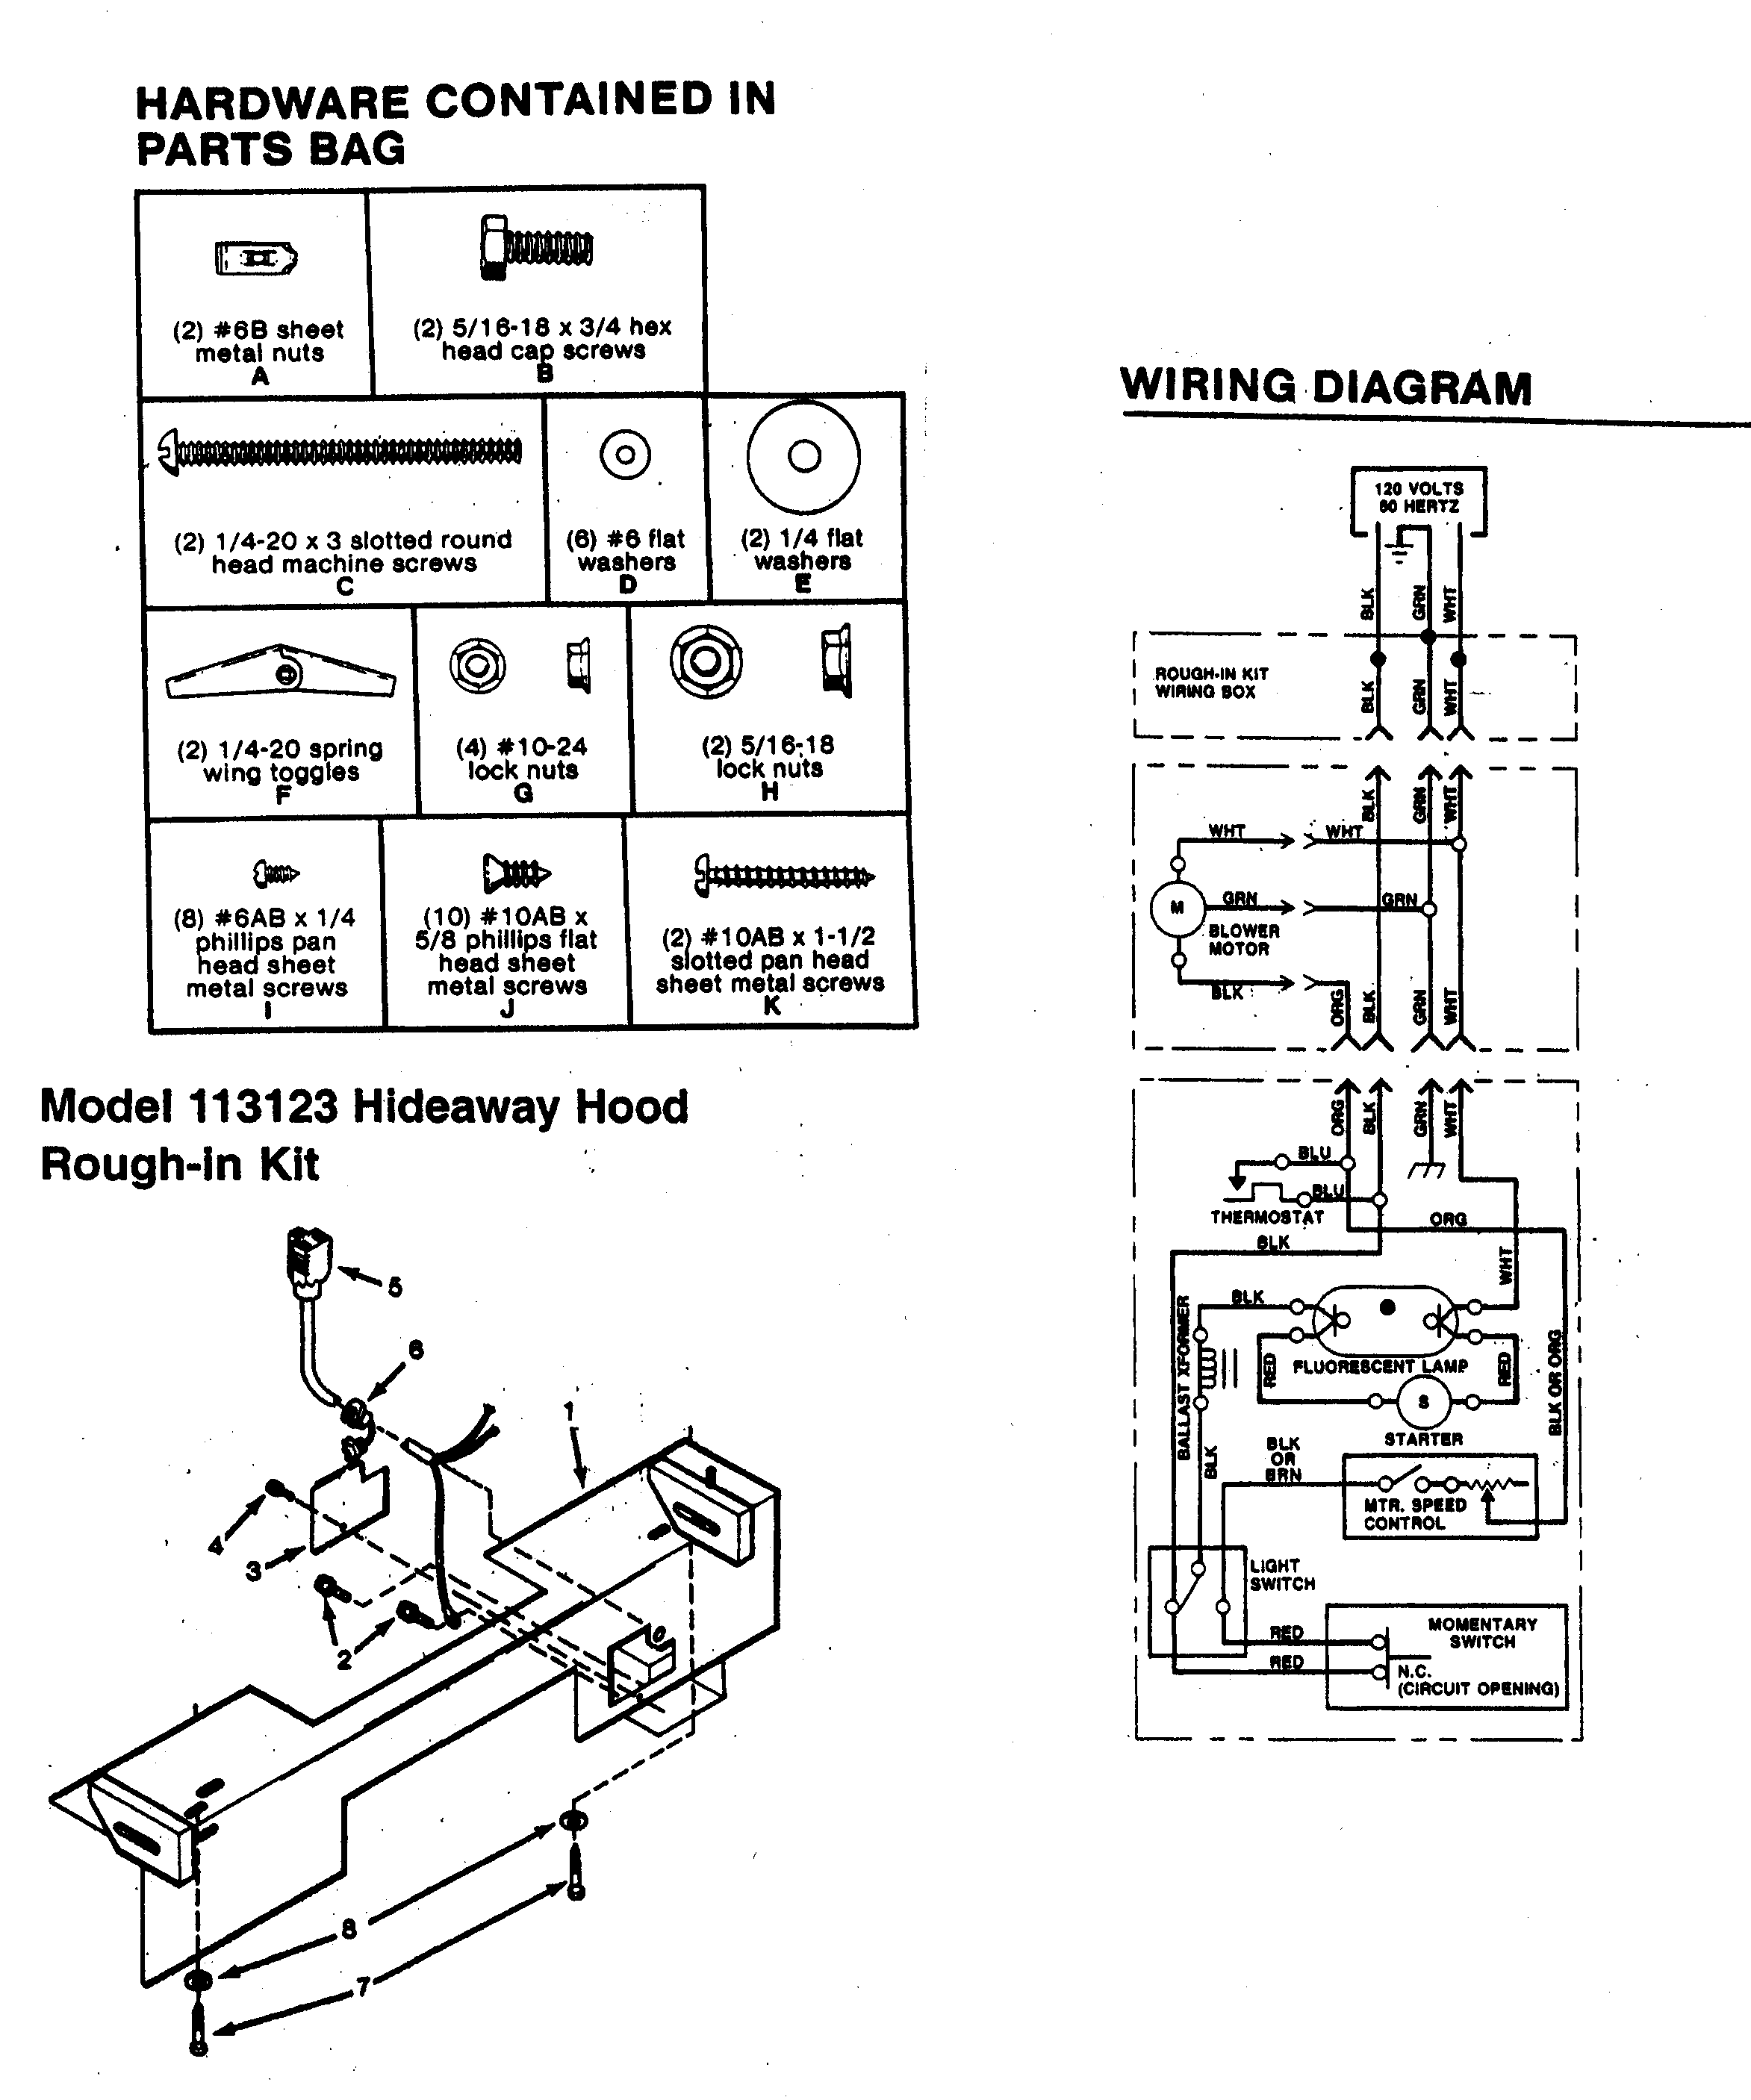 Unique Wiring Diagram For Electric Stove Outlet Diagram Diagramsample Diagramtemplate Wiringdiagram Di Bathroom Fan Bathroom Heater Fan Bathroom Fan Light